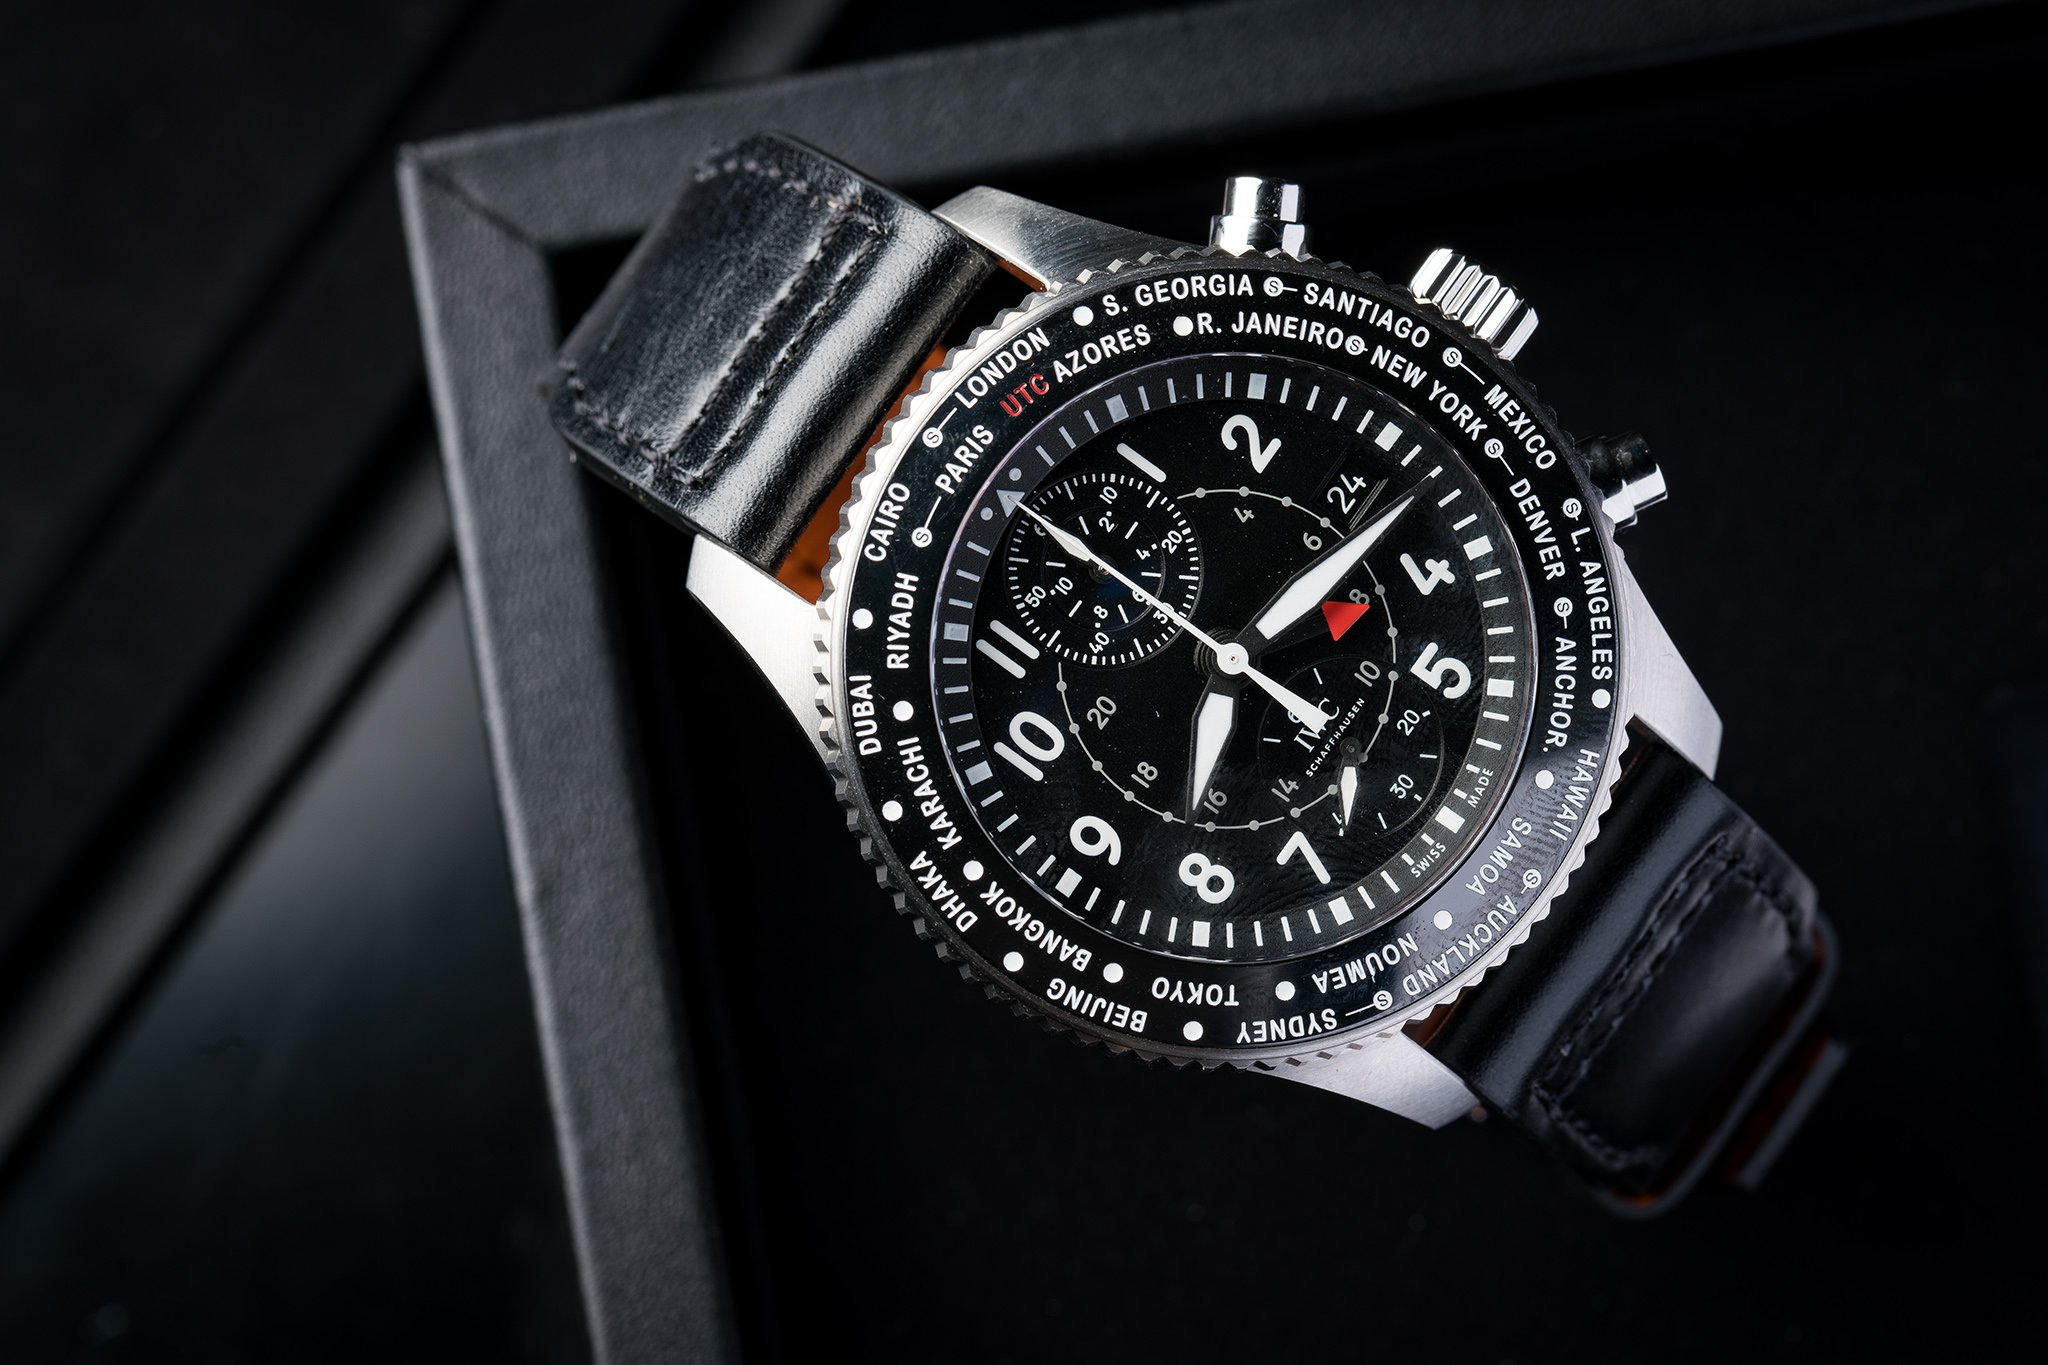 Replica-IWC-Pilots-Watch-Timezoner-Chronograph